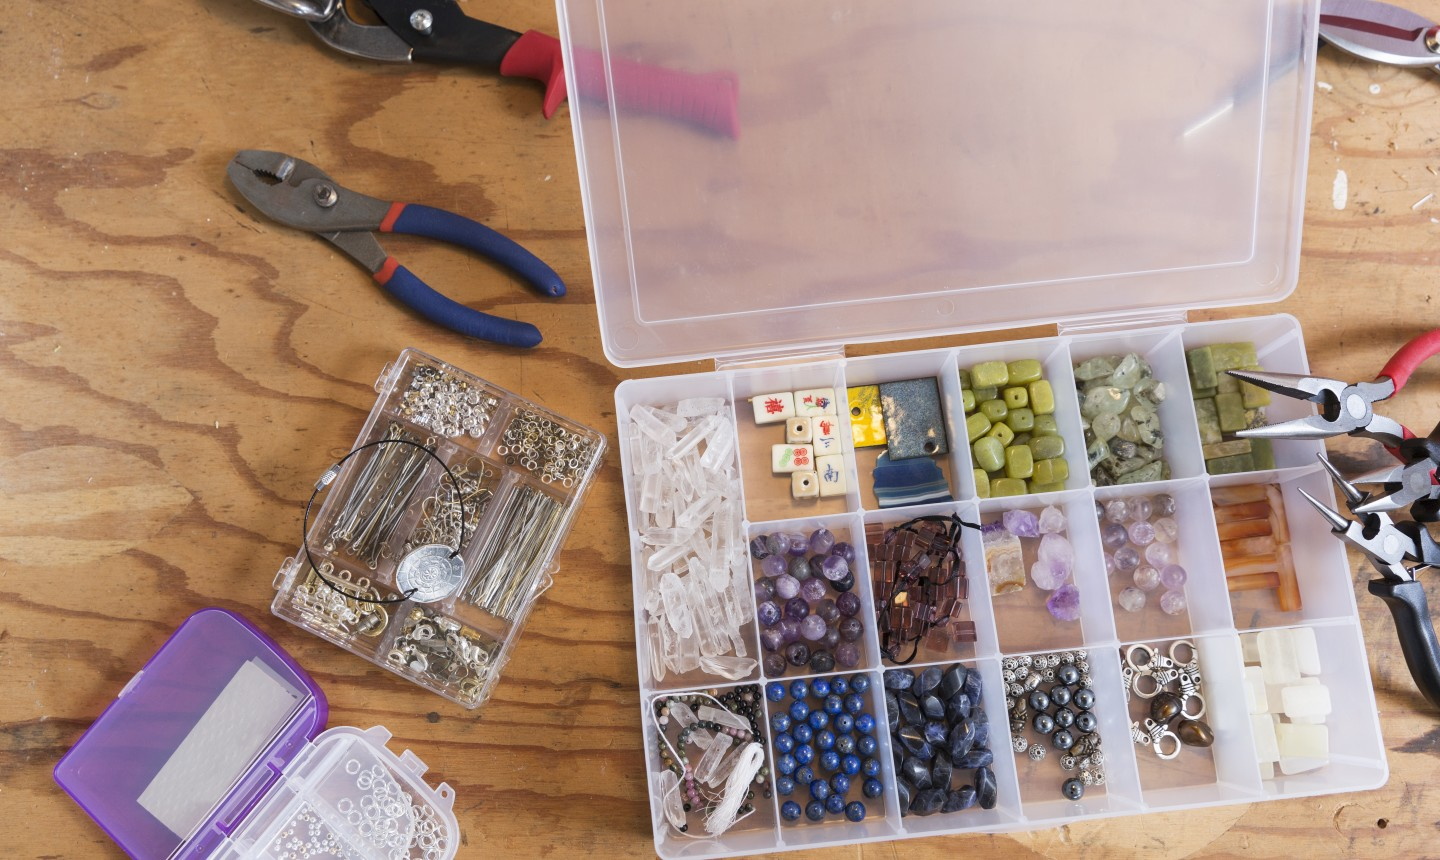 organized jewelry supplies